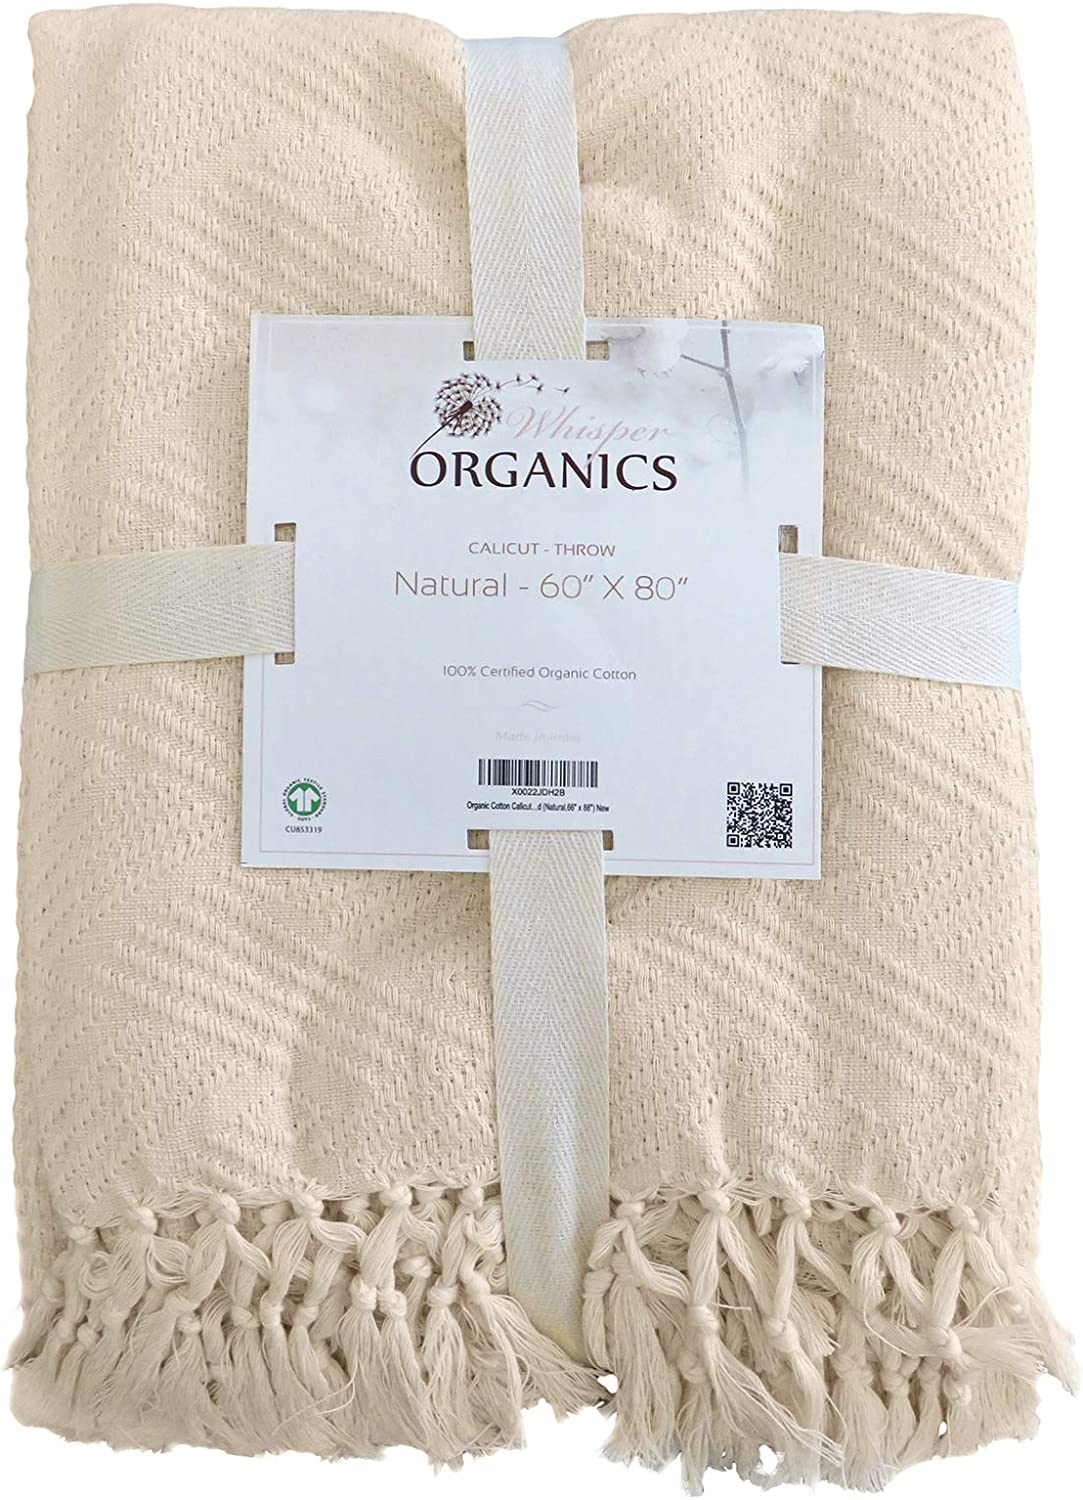 Whisper Organics 100% Organic Cotton Light Blanket - Throw Blanket with Diamond Jacquard Pattern - Breathable Blanket Throw - GOTS Certified Summer Blankets (Natural, 60x80)